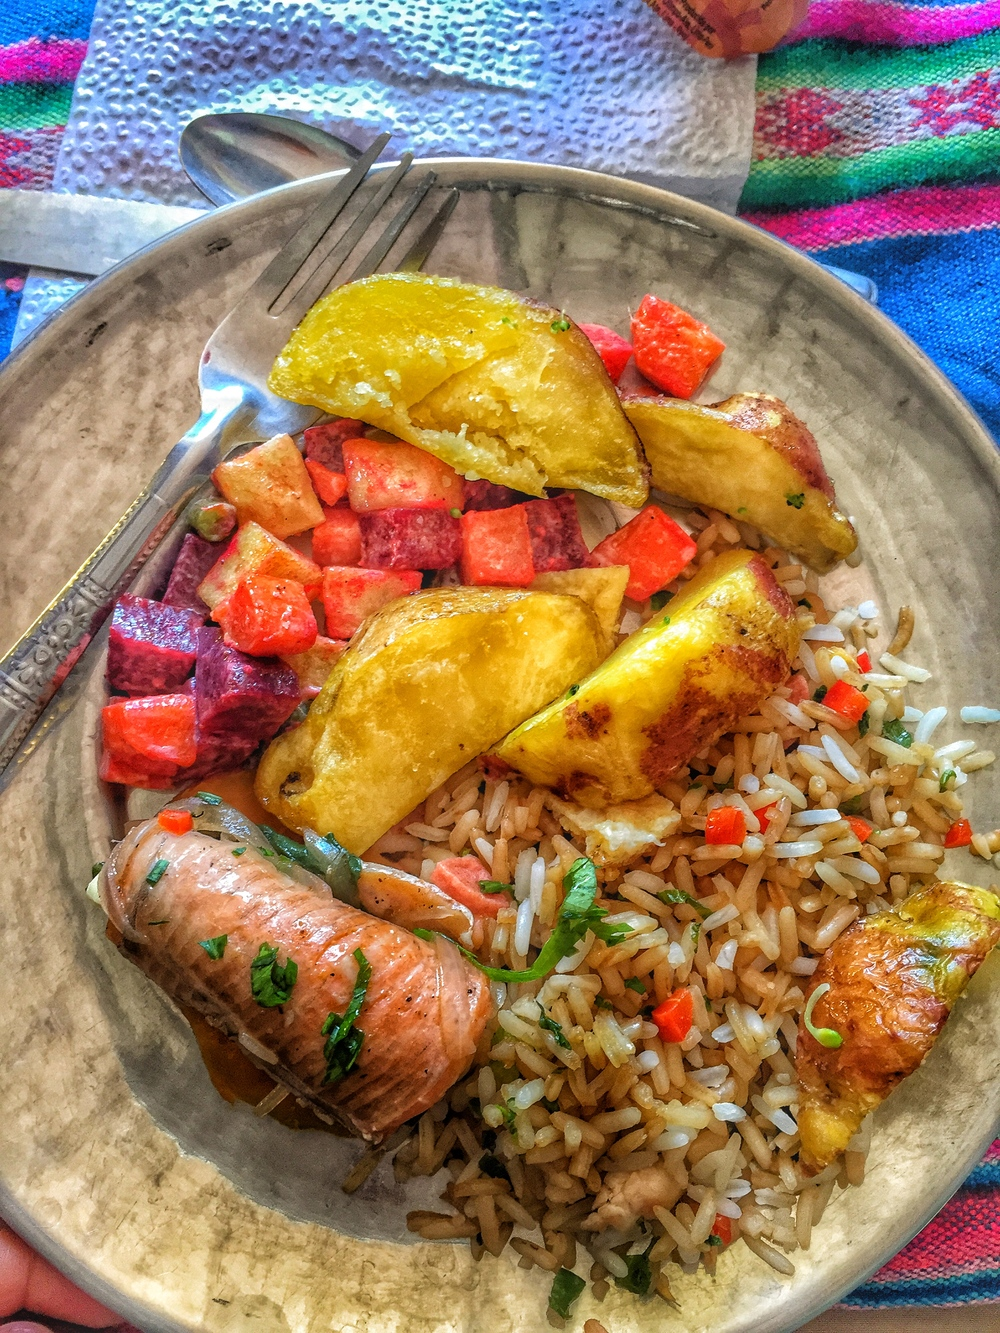 Lunch of potatoes, rice, beets and trout.